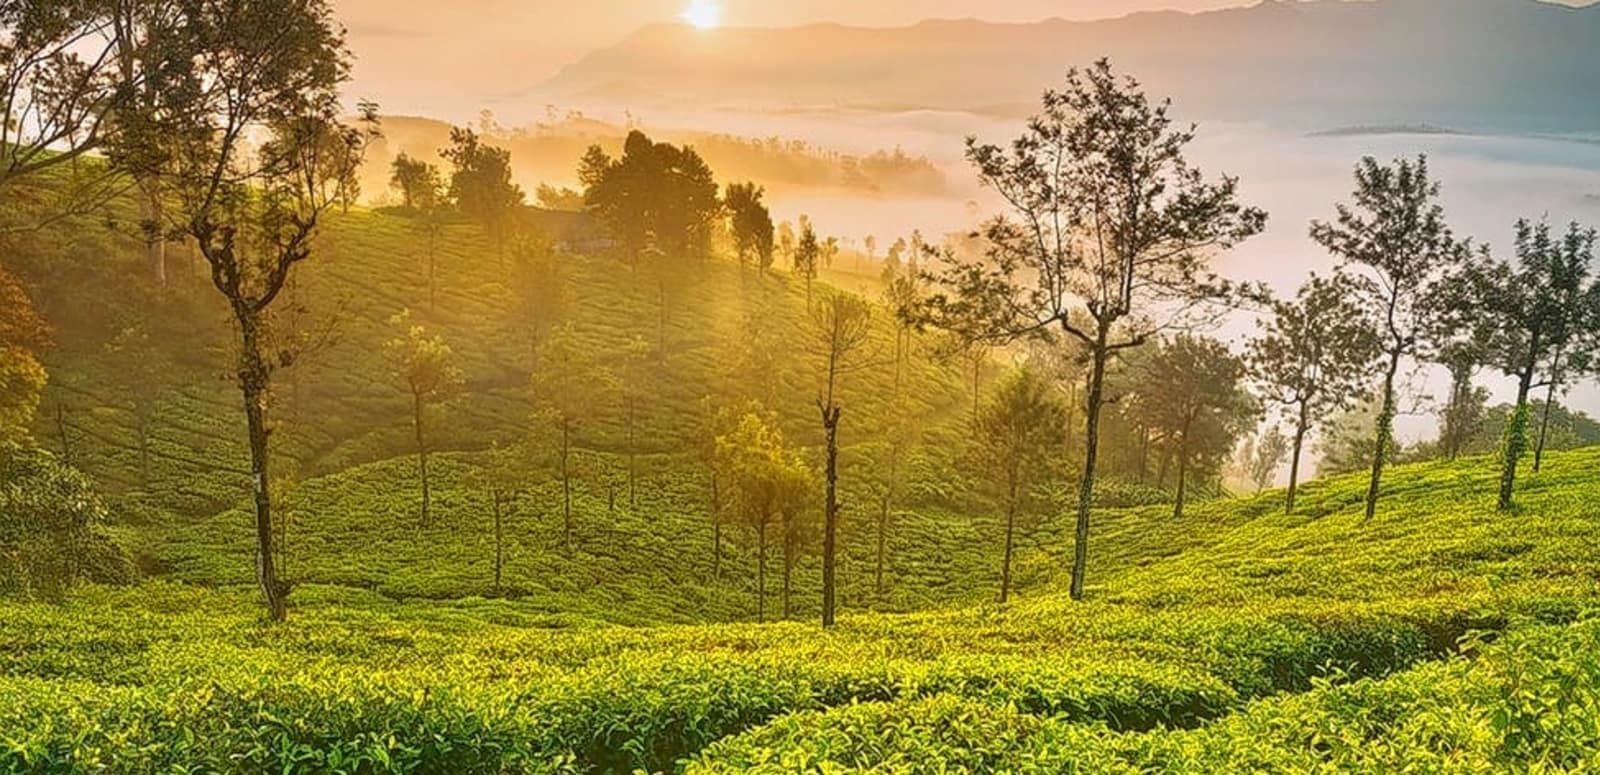 55 Places to Visit in Ooty - 2019 Updated (Attractions & FAQ's)